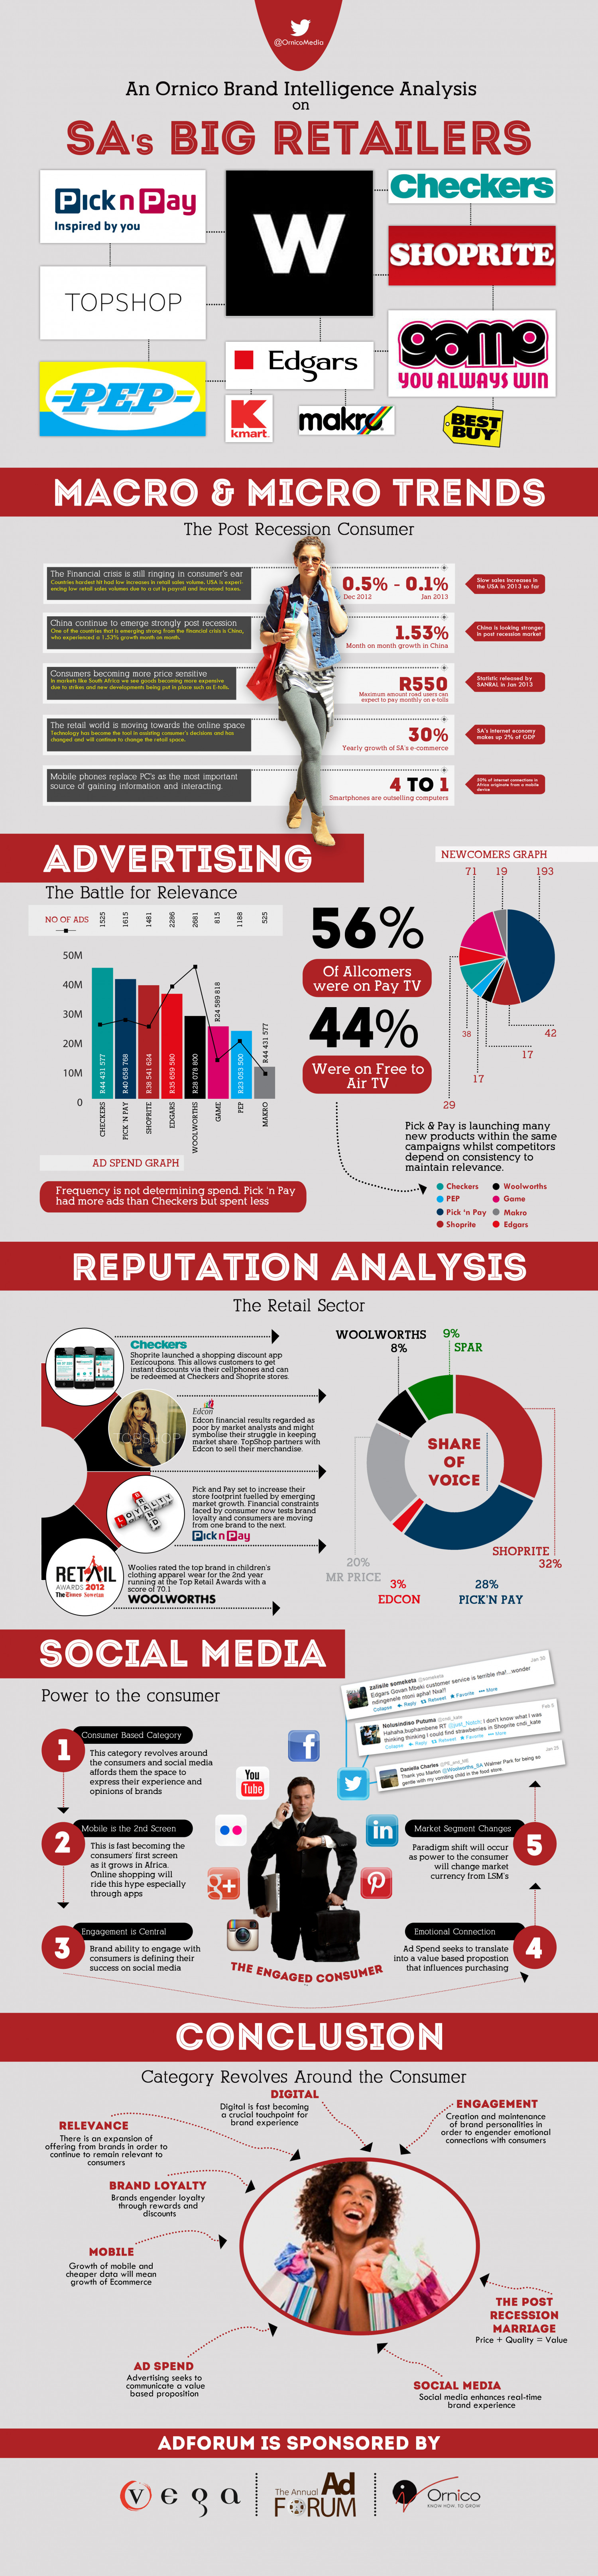 South Africa's Big Retailers Infographic